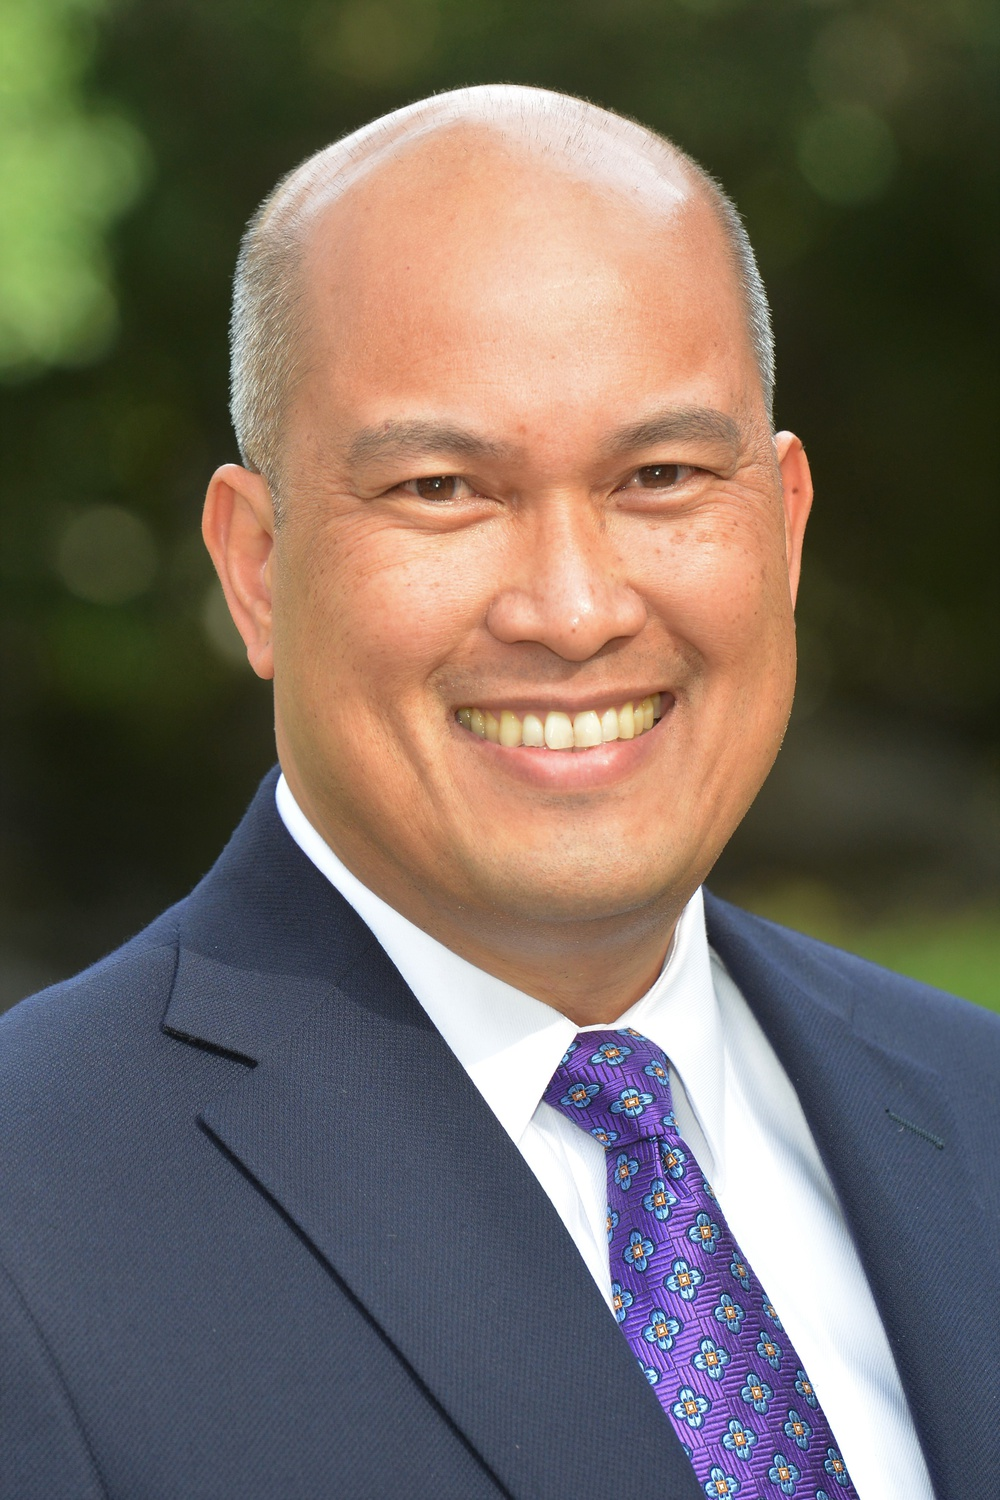 The Graduate School of Arts and Sciences named Samuel H. Bersola — the assistant vice provost for graduate education at the University of California, Los Angeles — as its new Dean of Students Wednesday.